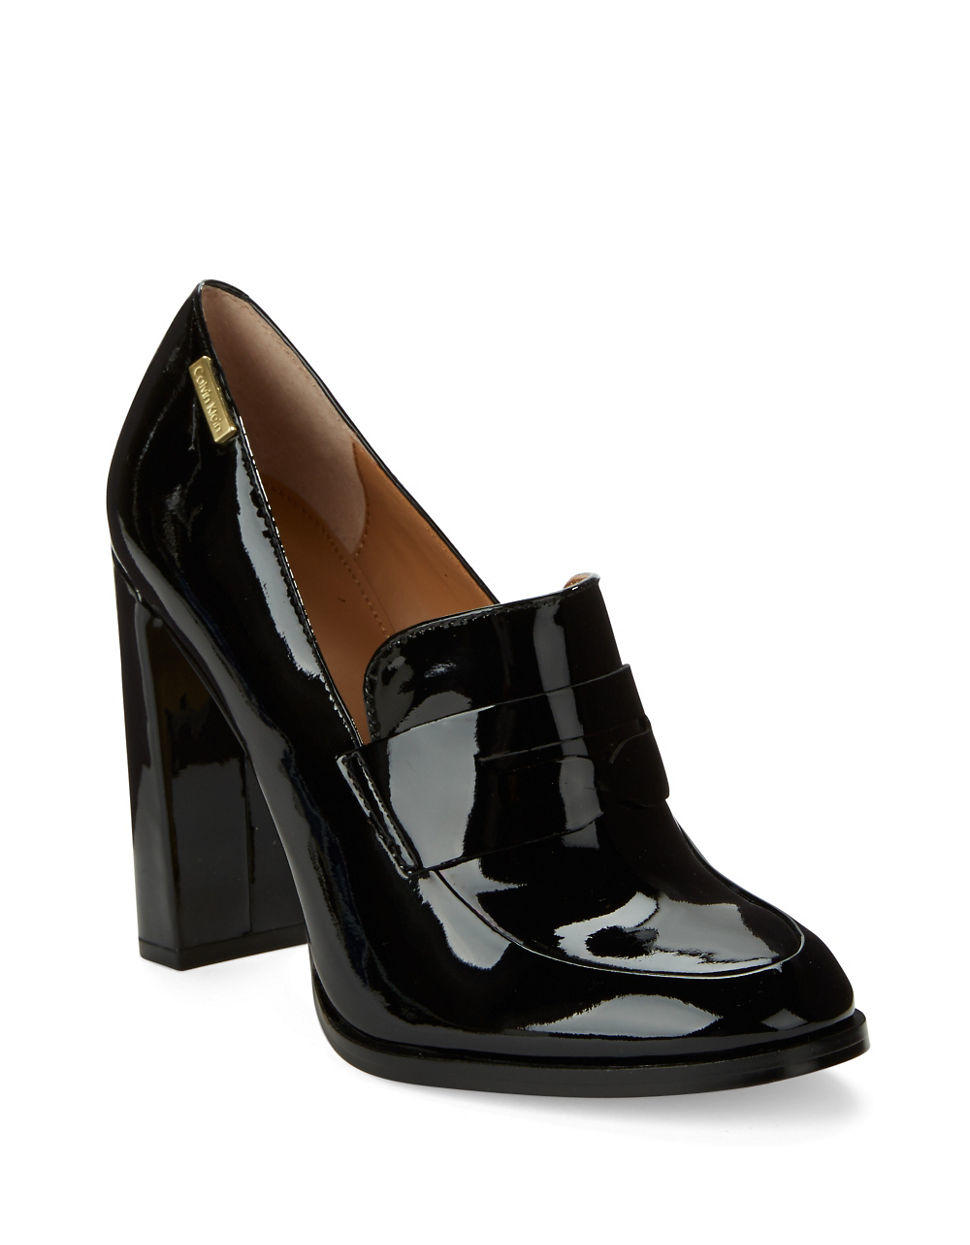 save off 9c10b 61ad9 Calvin Klein Kathryn Leather Loafer Pumps in Black - Lyst